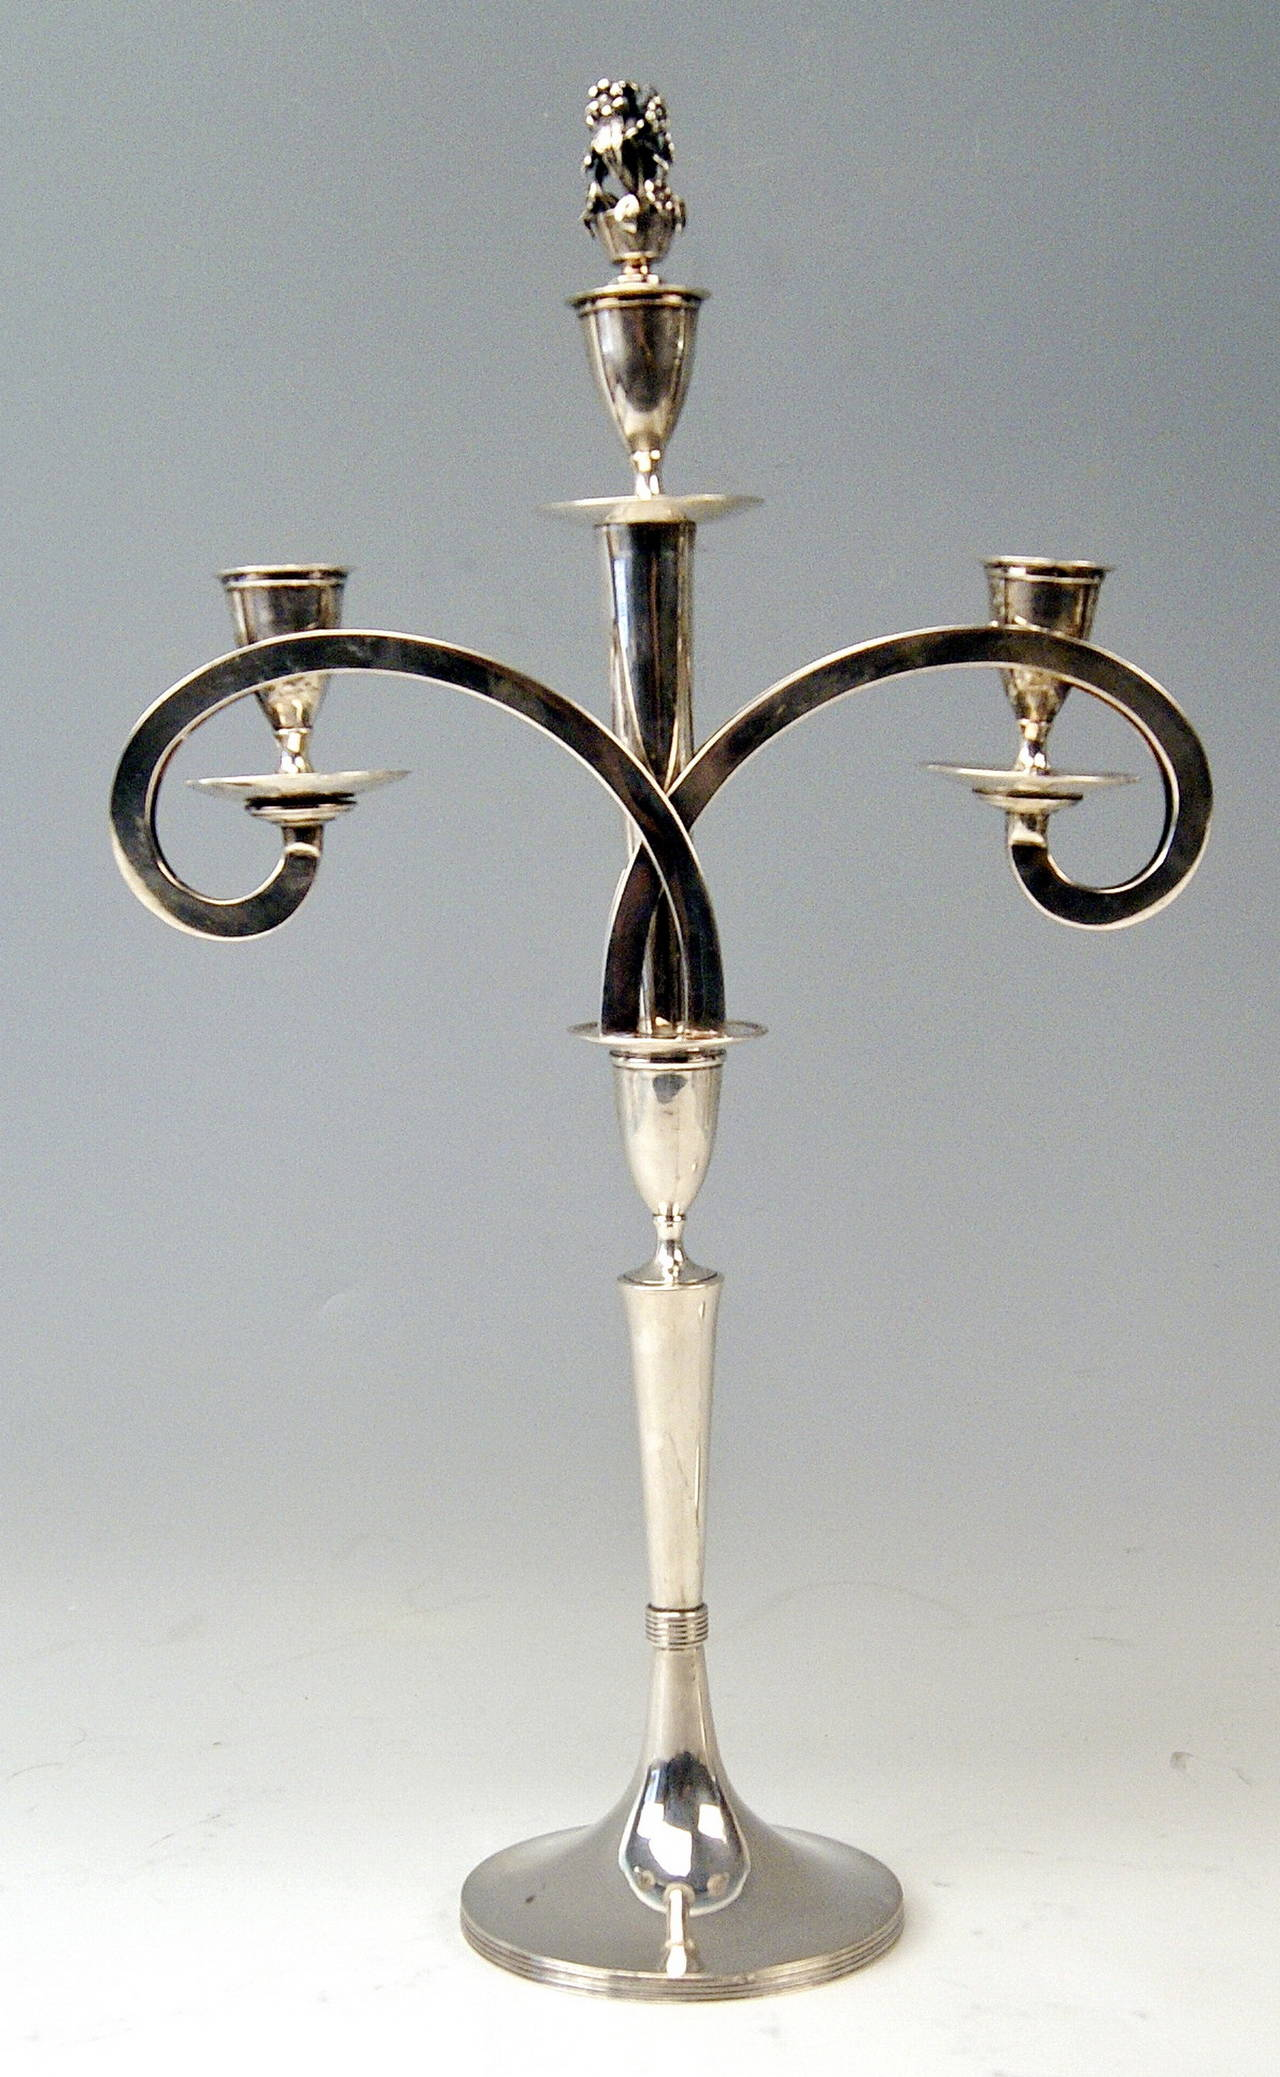 Early 19th Century Silver 13 Lot Viennese Two Empire Candlesticks by Anton Koell Dated 1811 For Sale